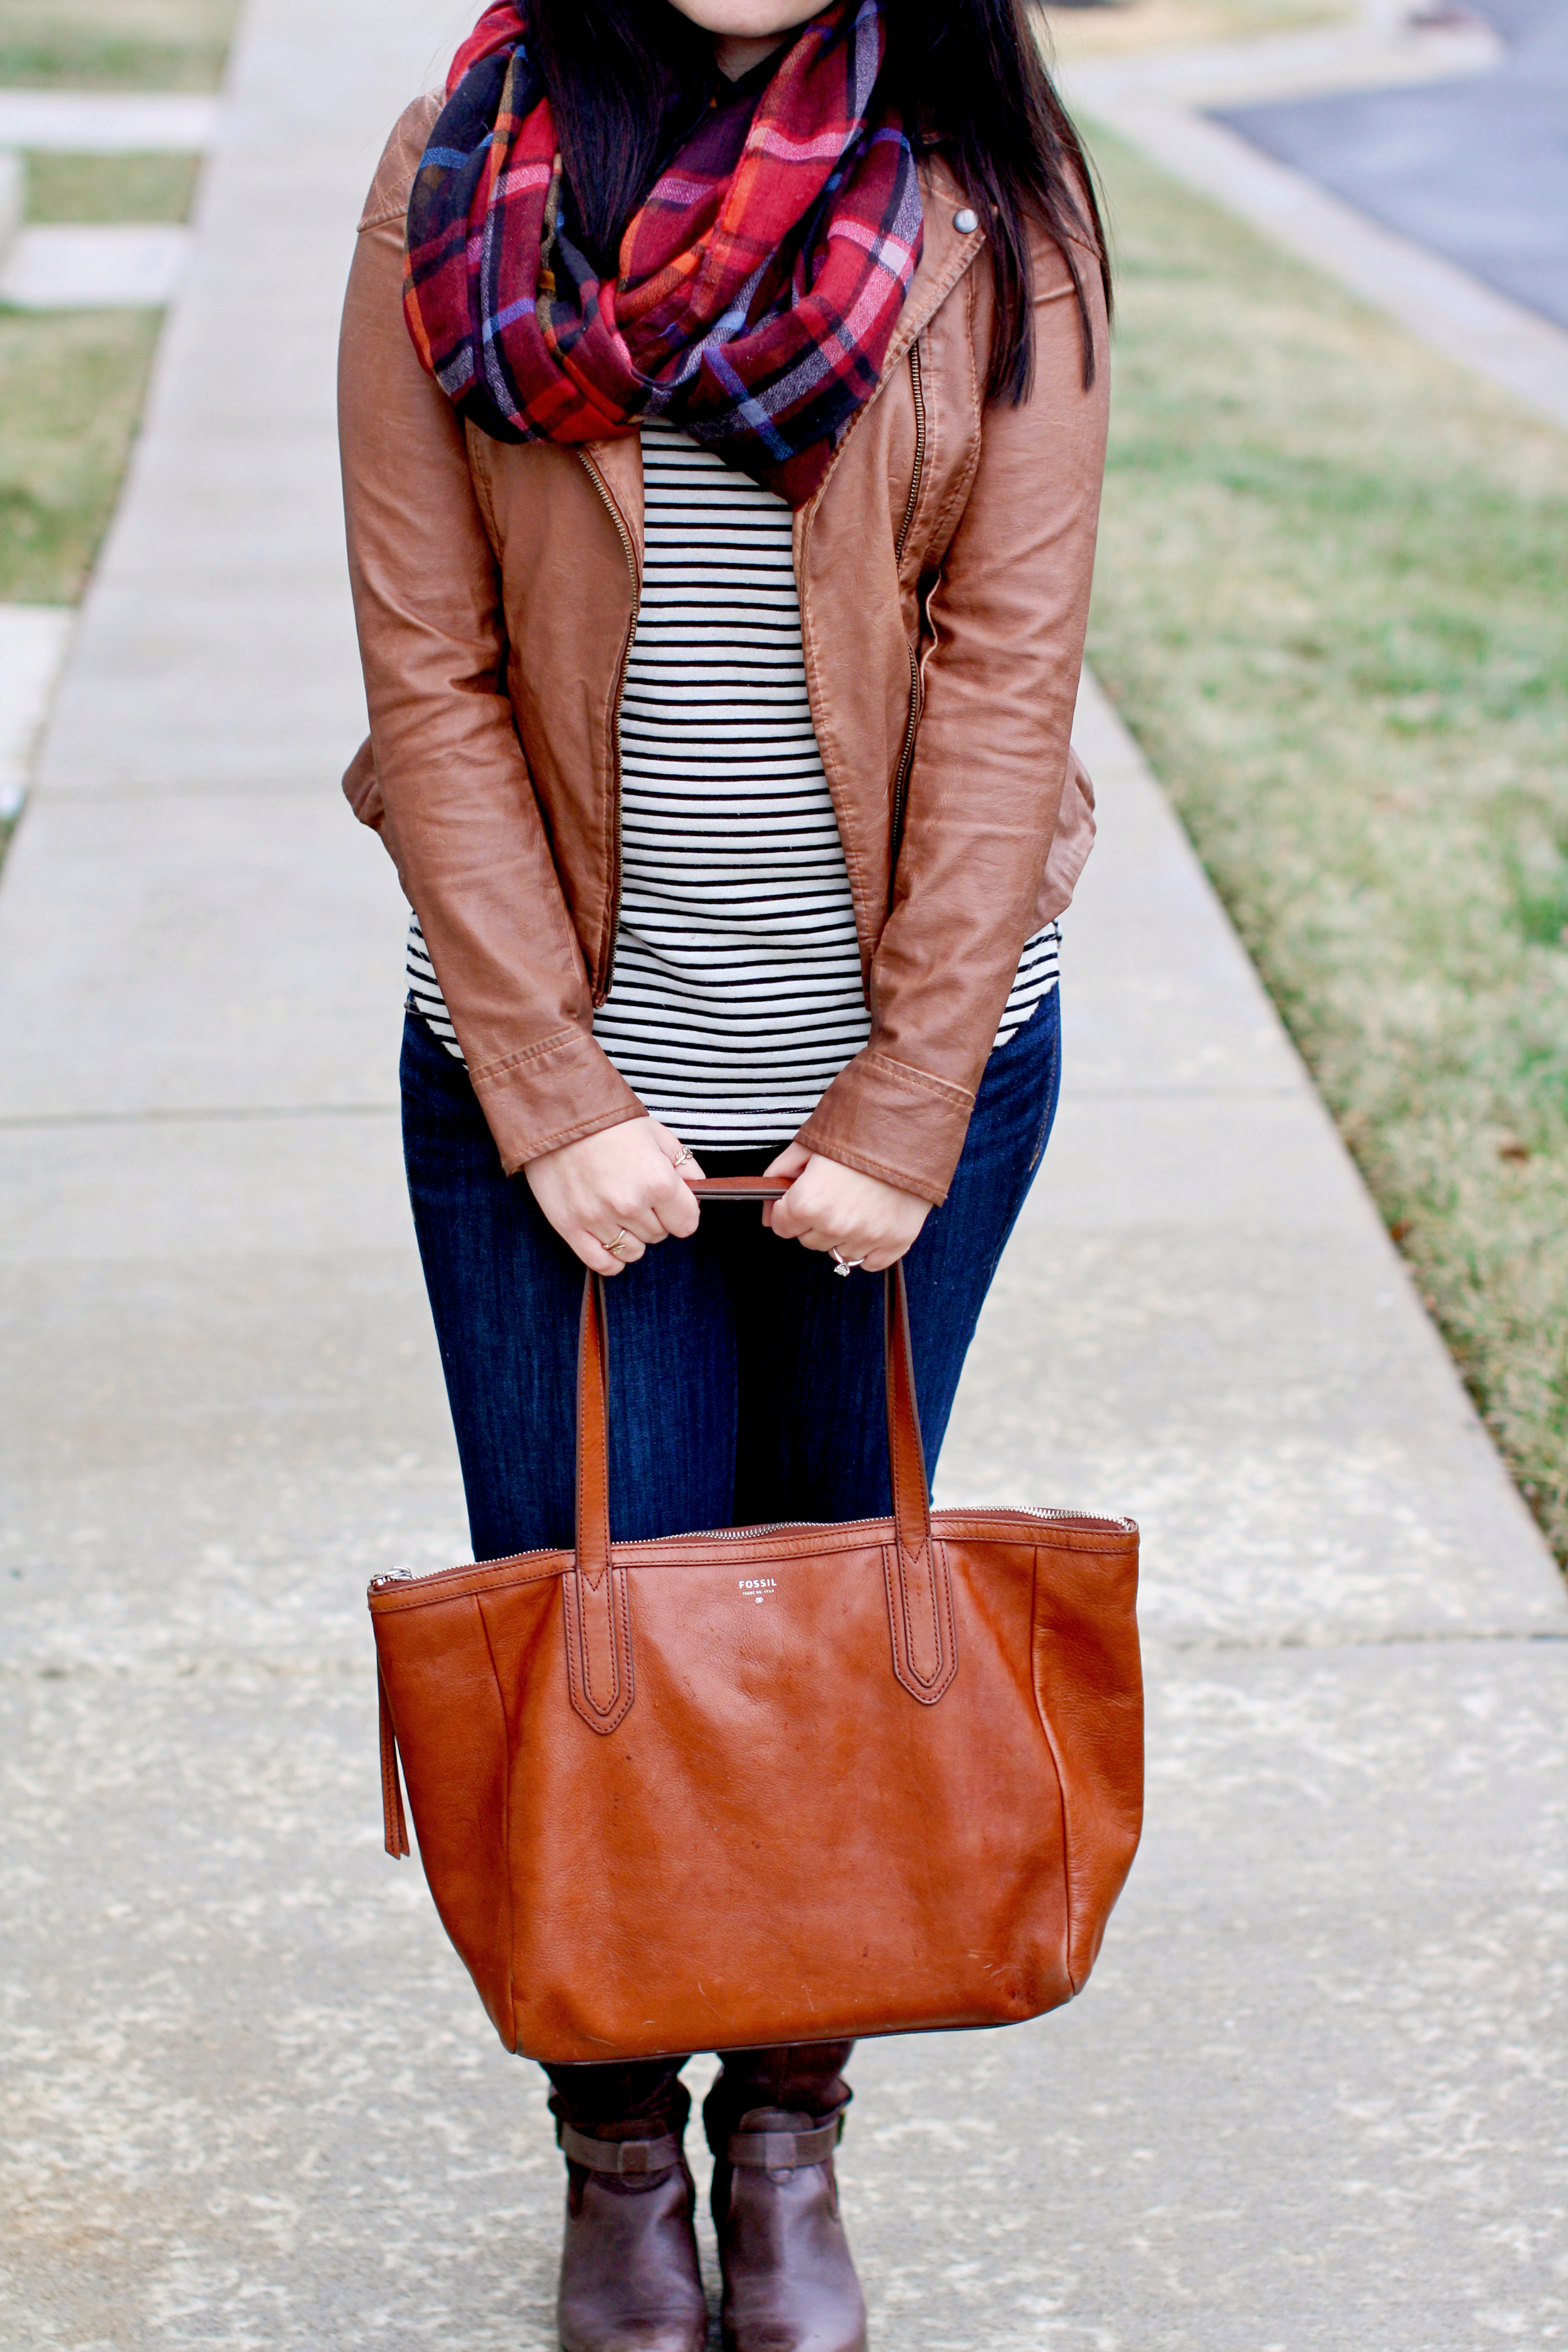 6 Cozy Fall Outfits To Wear Right Now via chelceytate.com